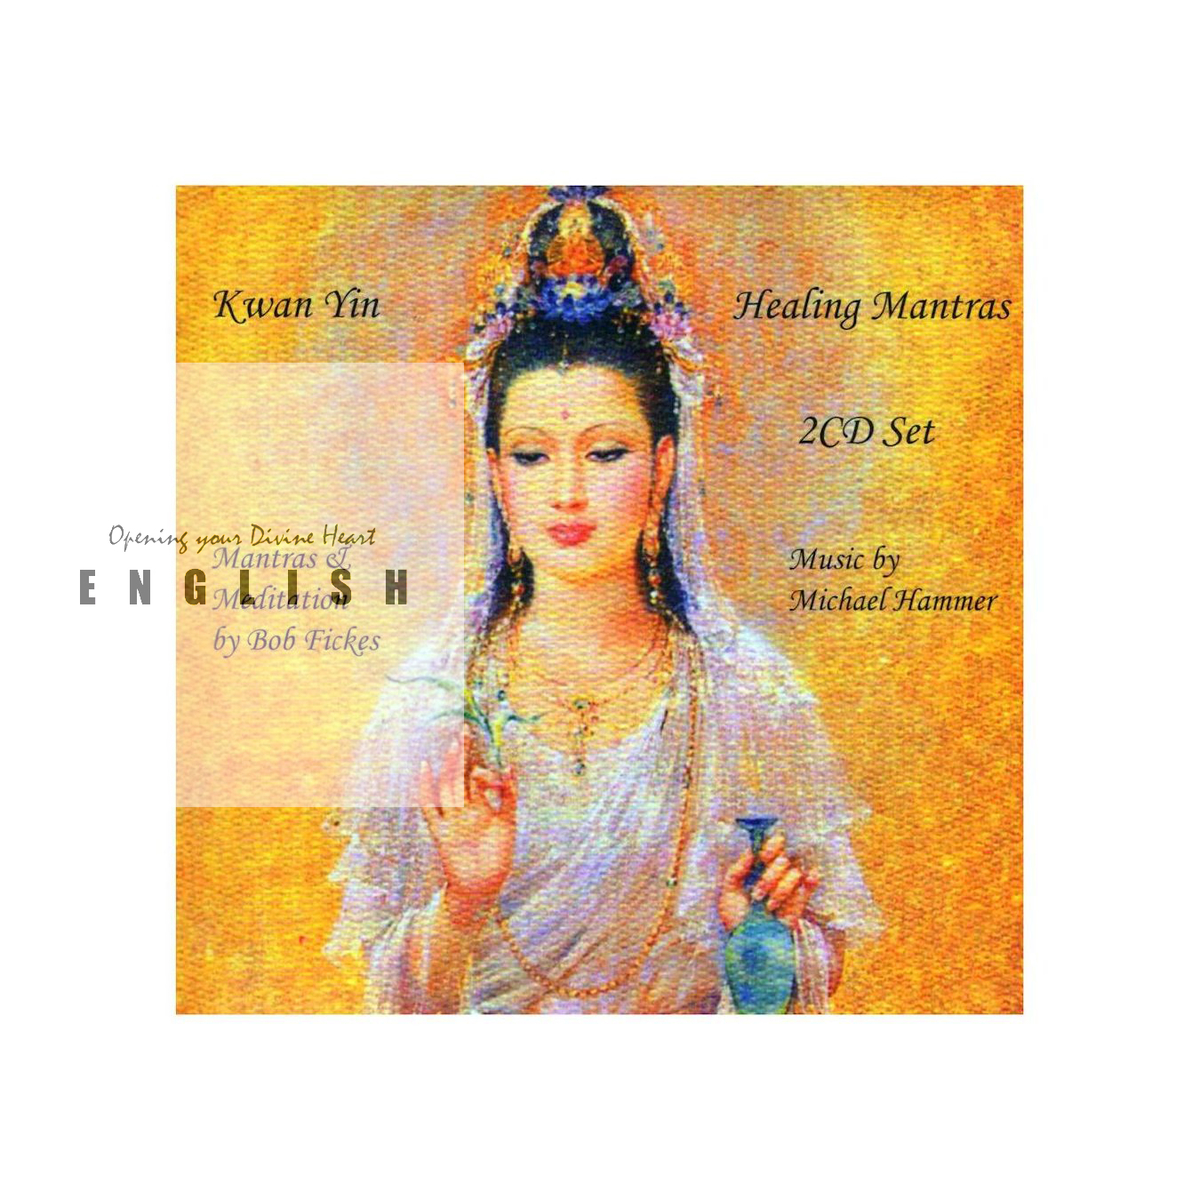 KWAN YIN HEALING MANTRAS - Meditation CD